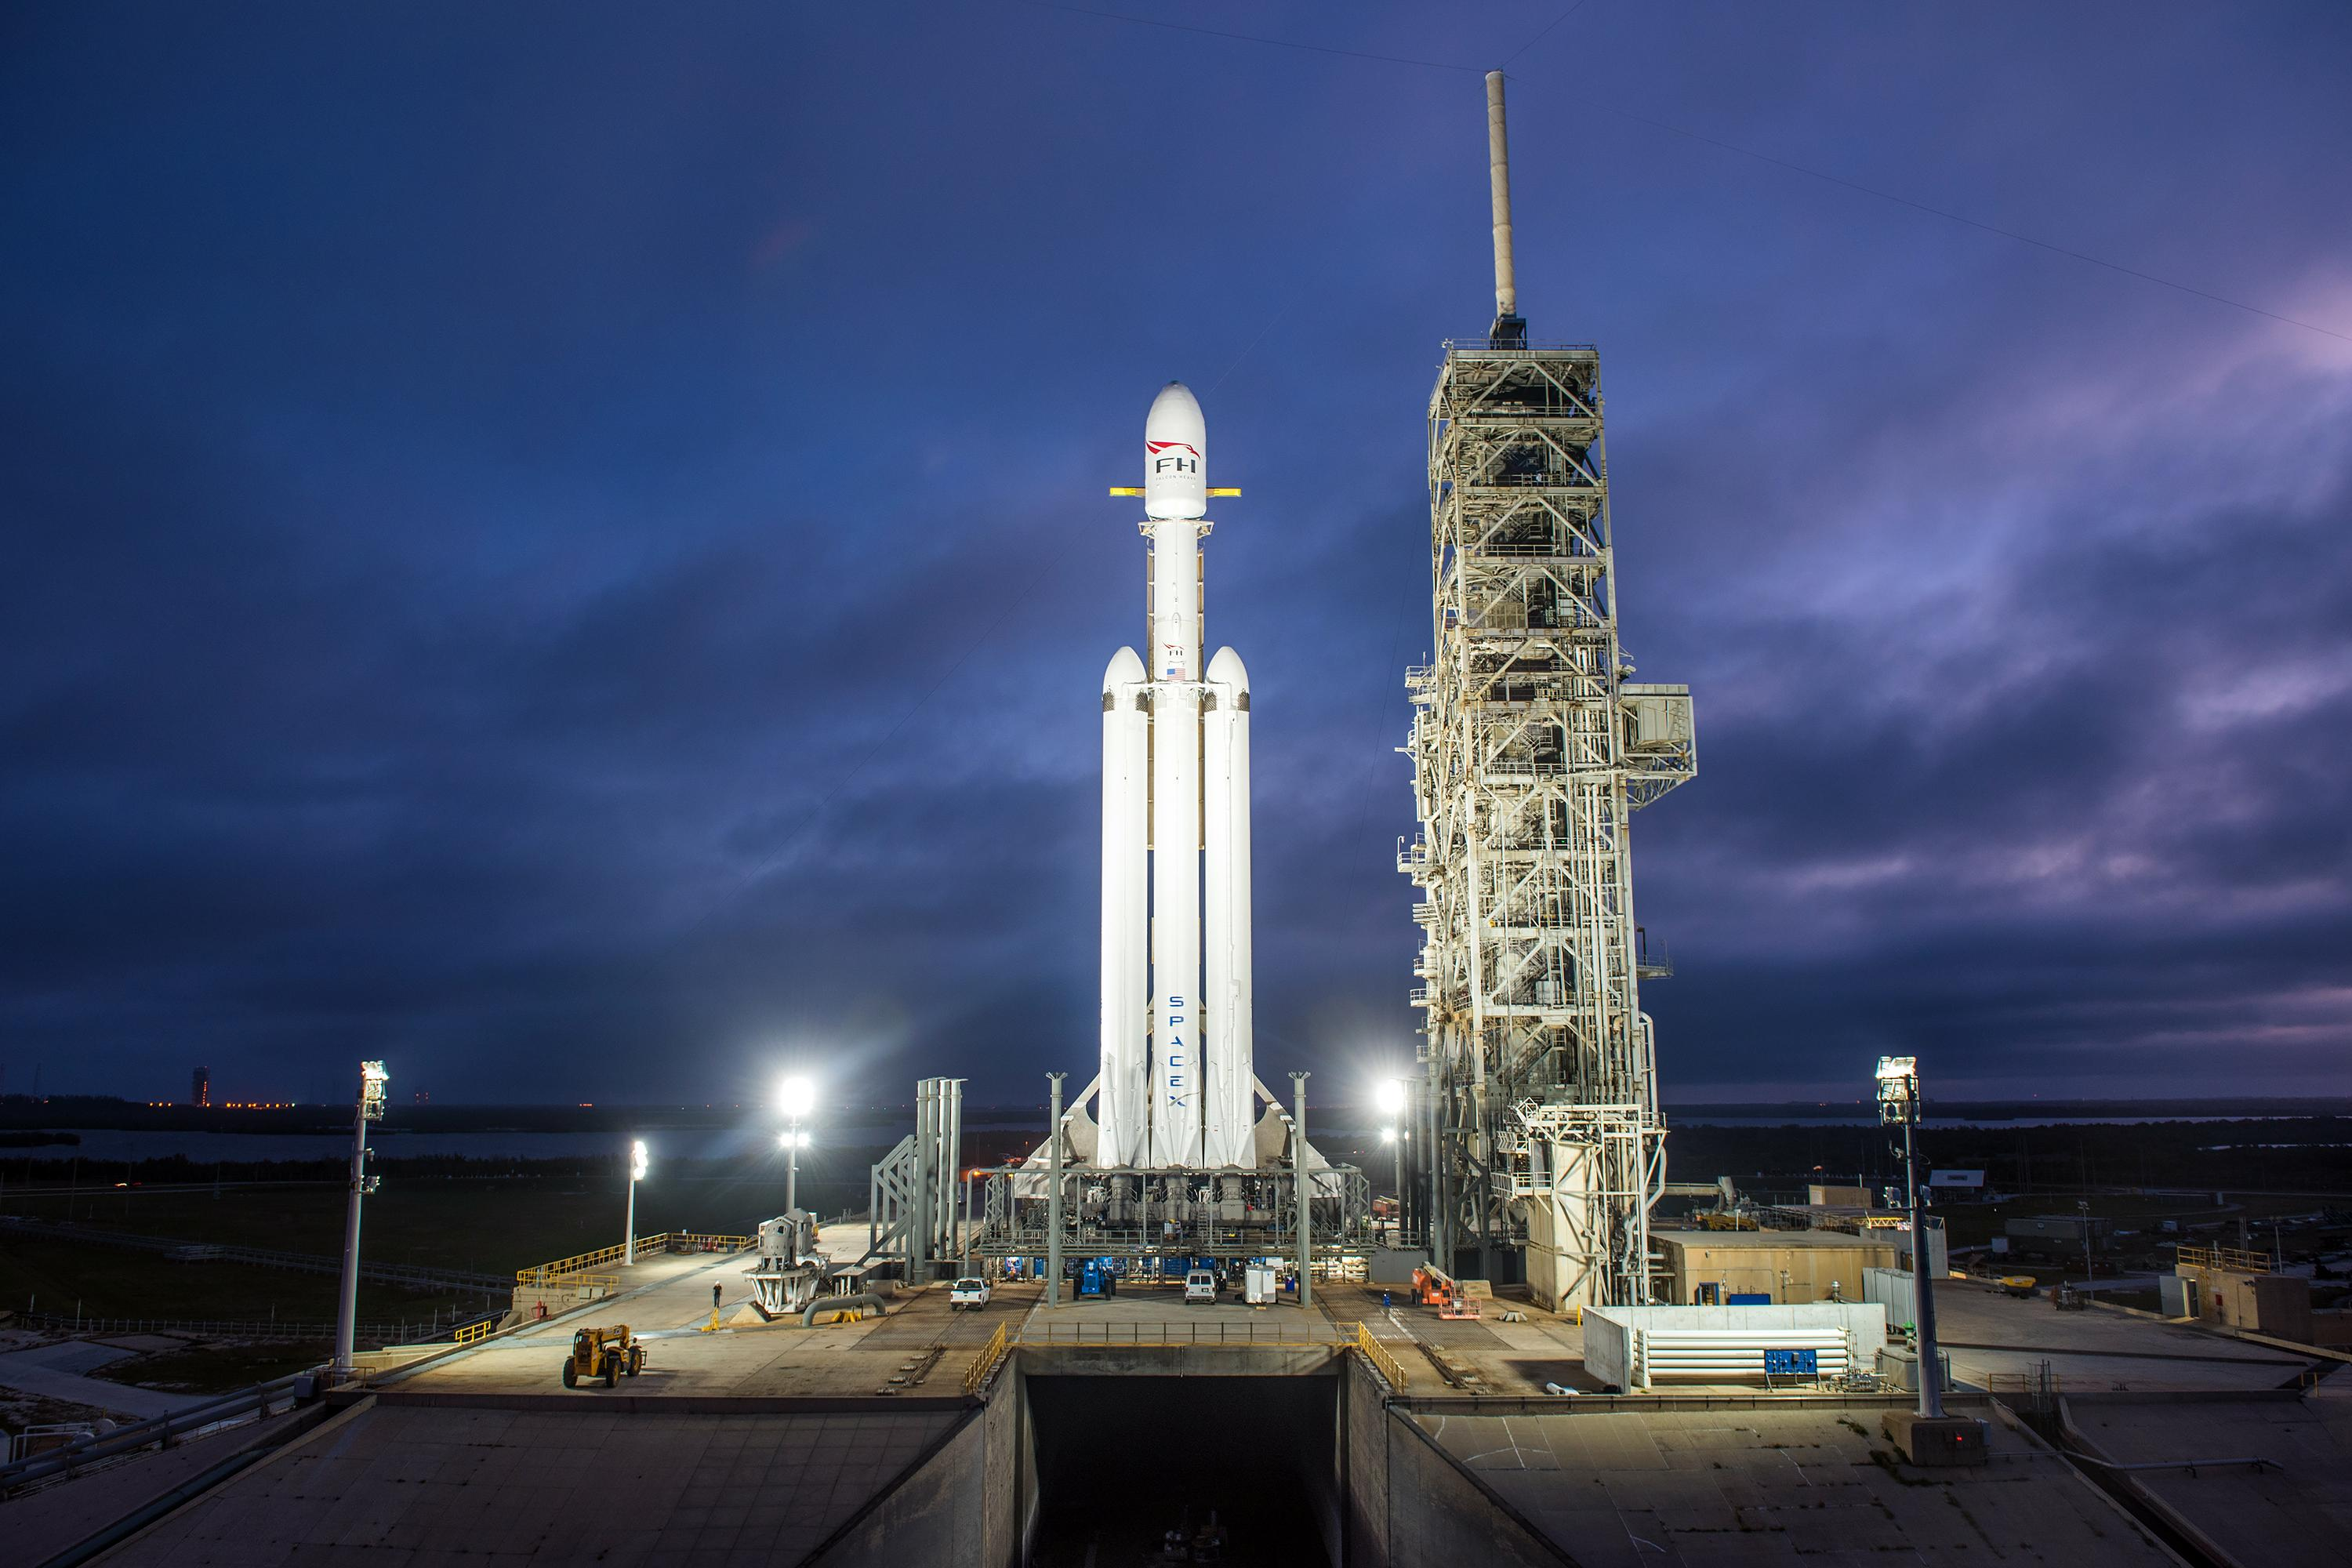 Elon Musk will send his Tesla auto  to Mars on SpaceX rocket